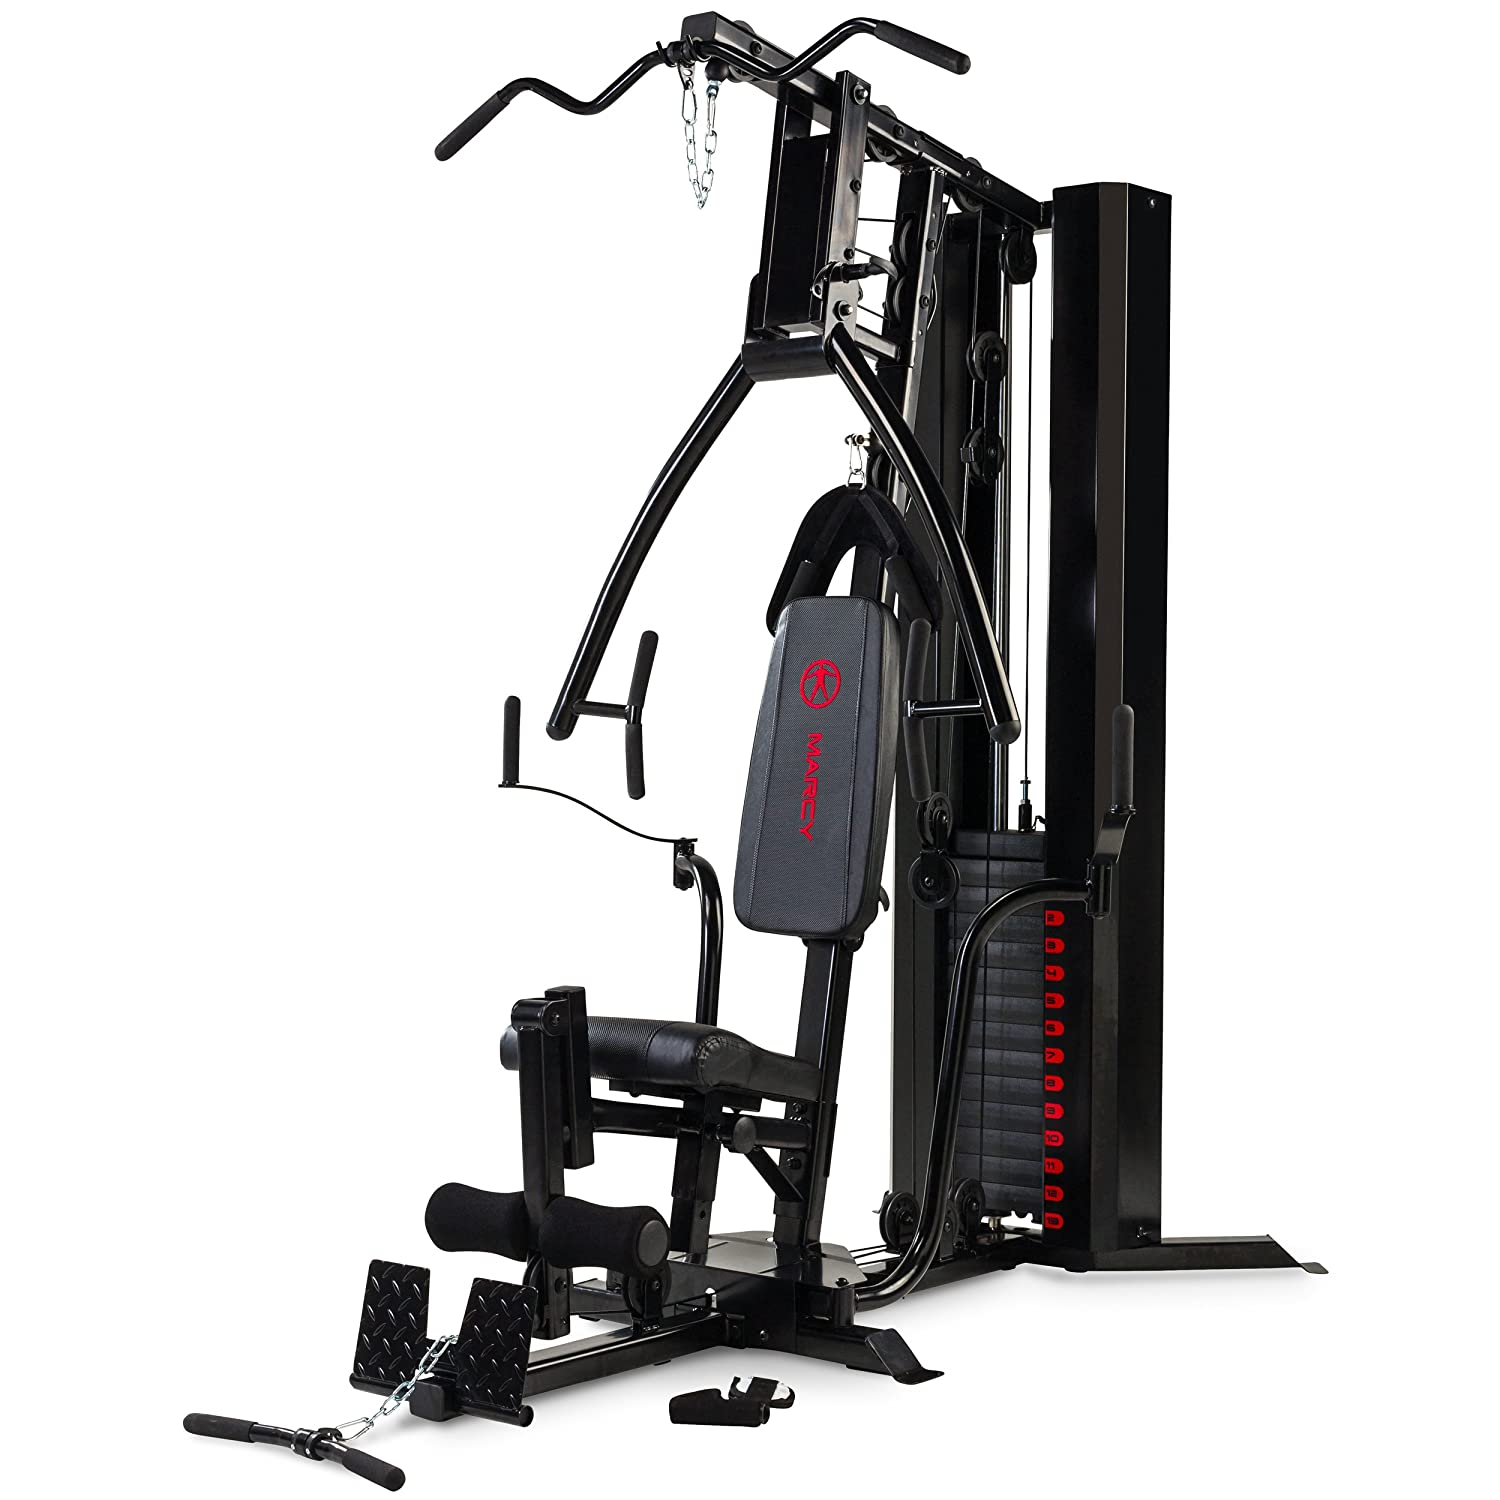 Marcy Eclipse HG5000 Deluxe Home Multi Gym: Amazon.co.uk: Sports & Outdoors